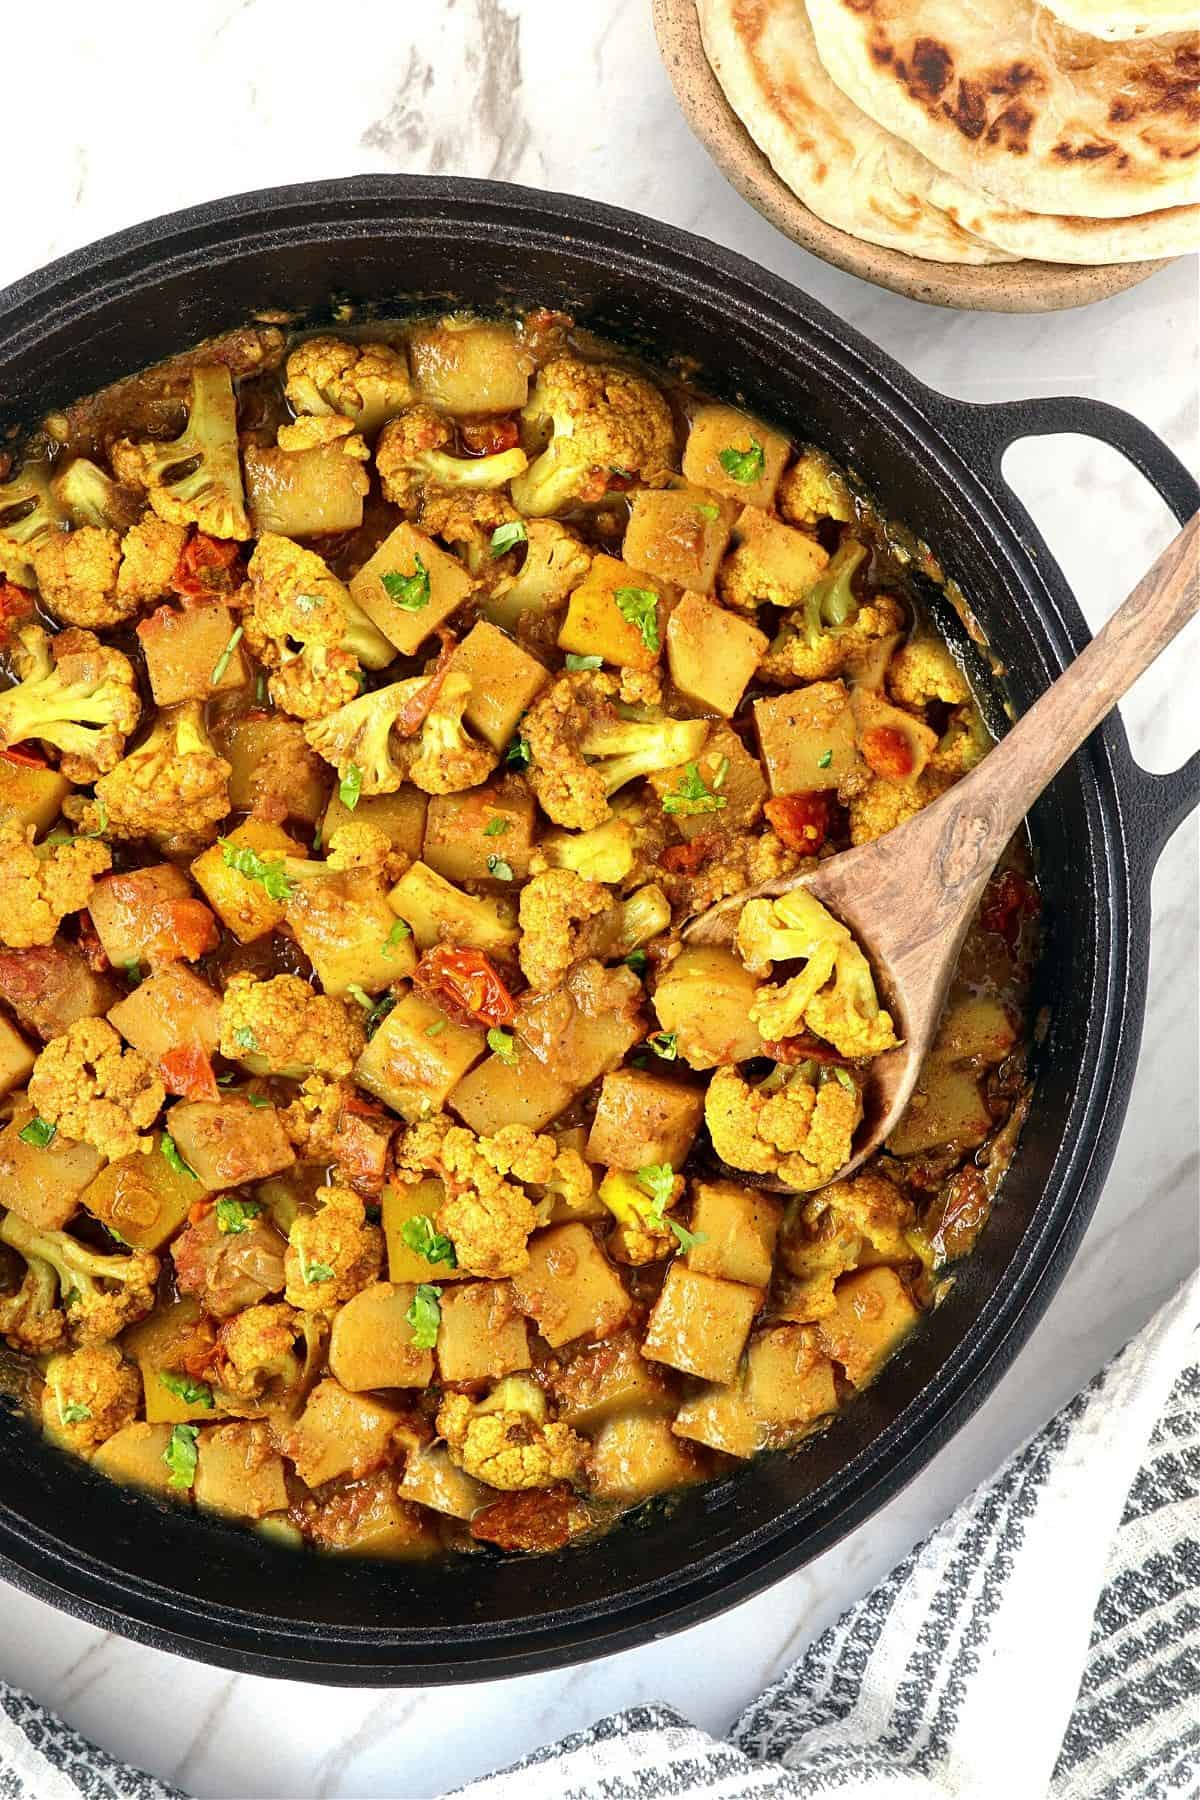 Close up view of fully cooked potatoes and cauliflower in a pan.